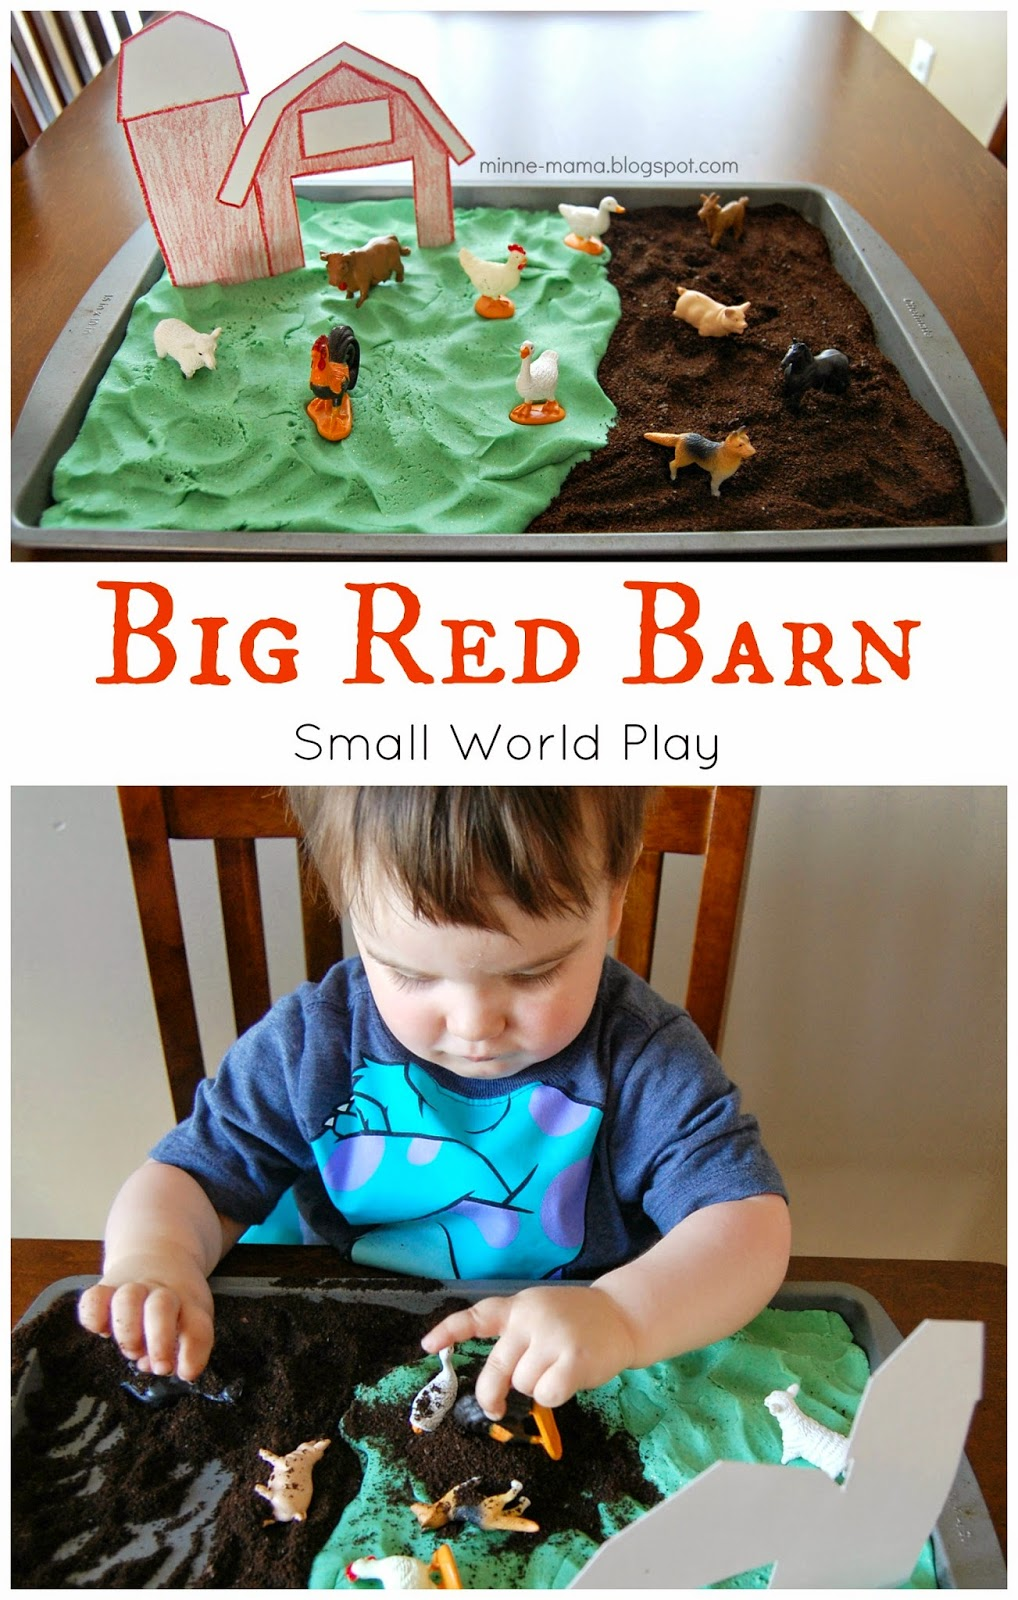 http://minne-mama.blogspot.com/2014/04/big-red-barn-play.html